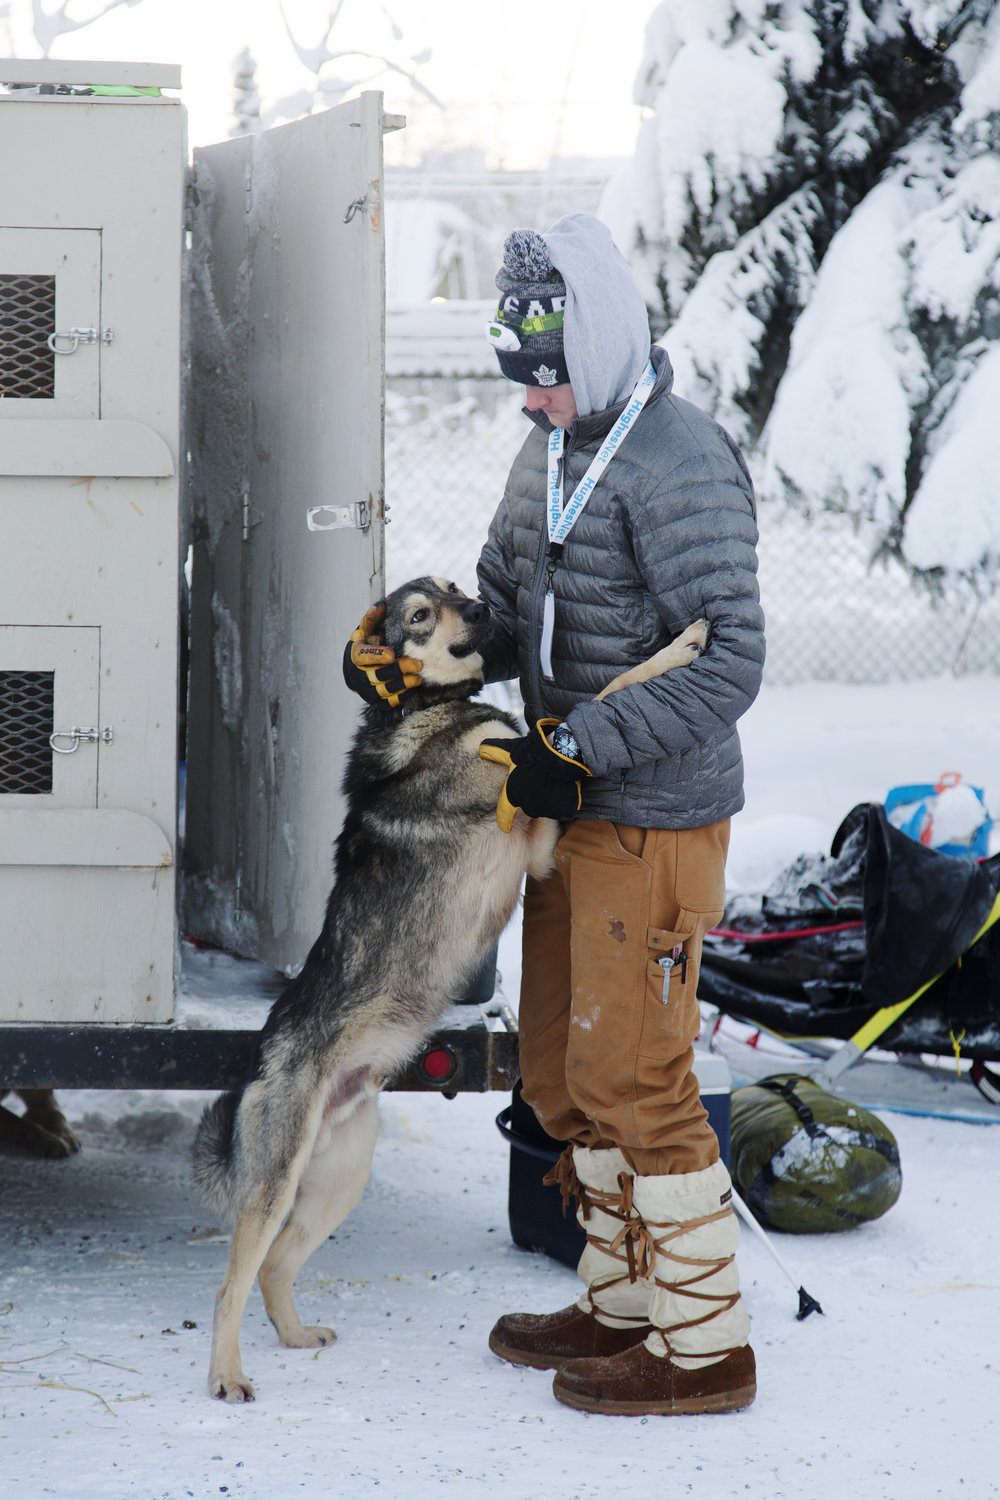 Dog handler, Max Veio embraces Wiseman in the dog yard before the start of the race. Wiseman runs for 21 year old Yukon Quest rookie, #21 Vebjorn Aishana Reitan. Reitan is from Kaktovik, AK and works as a polar bear tour guide there. (c) Sarah Manriquez 2018